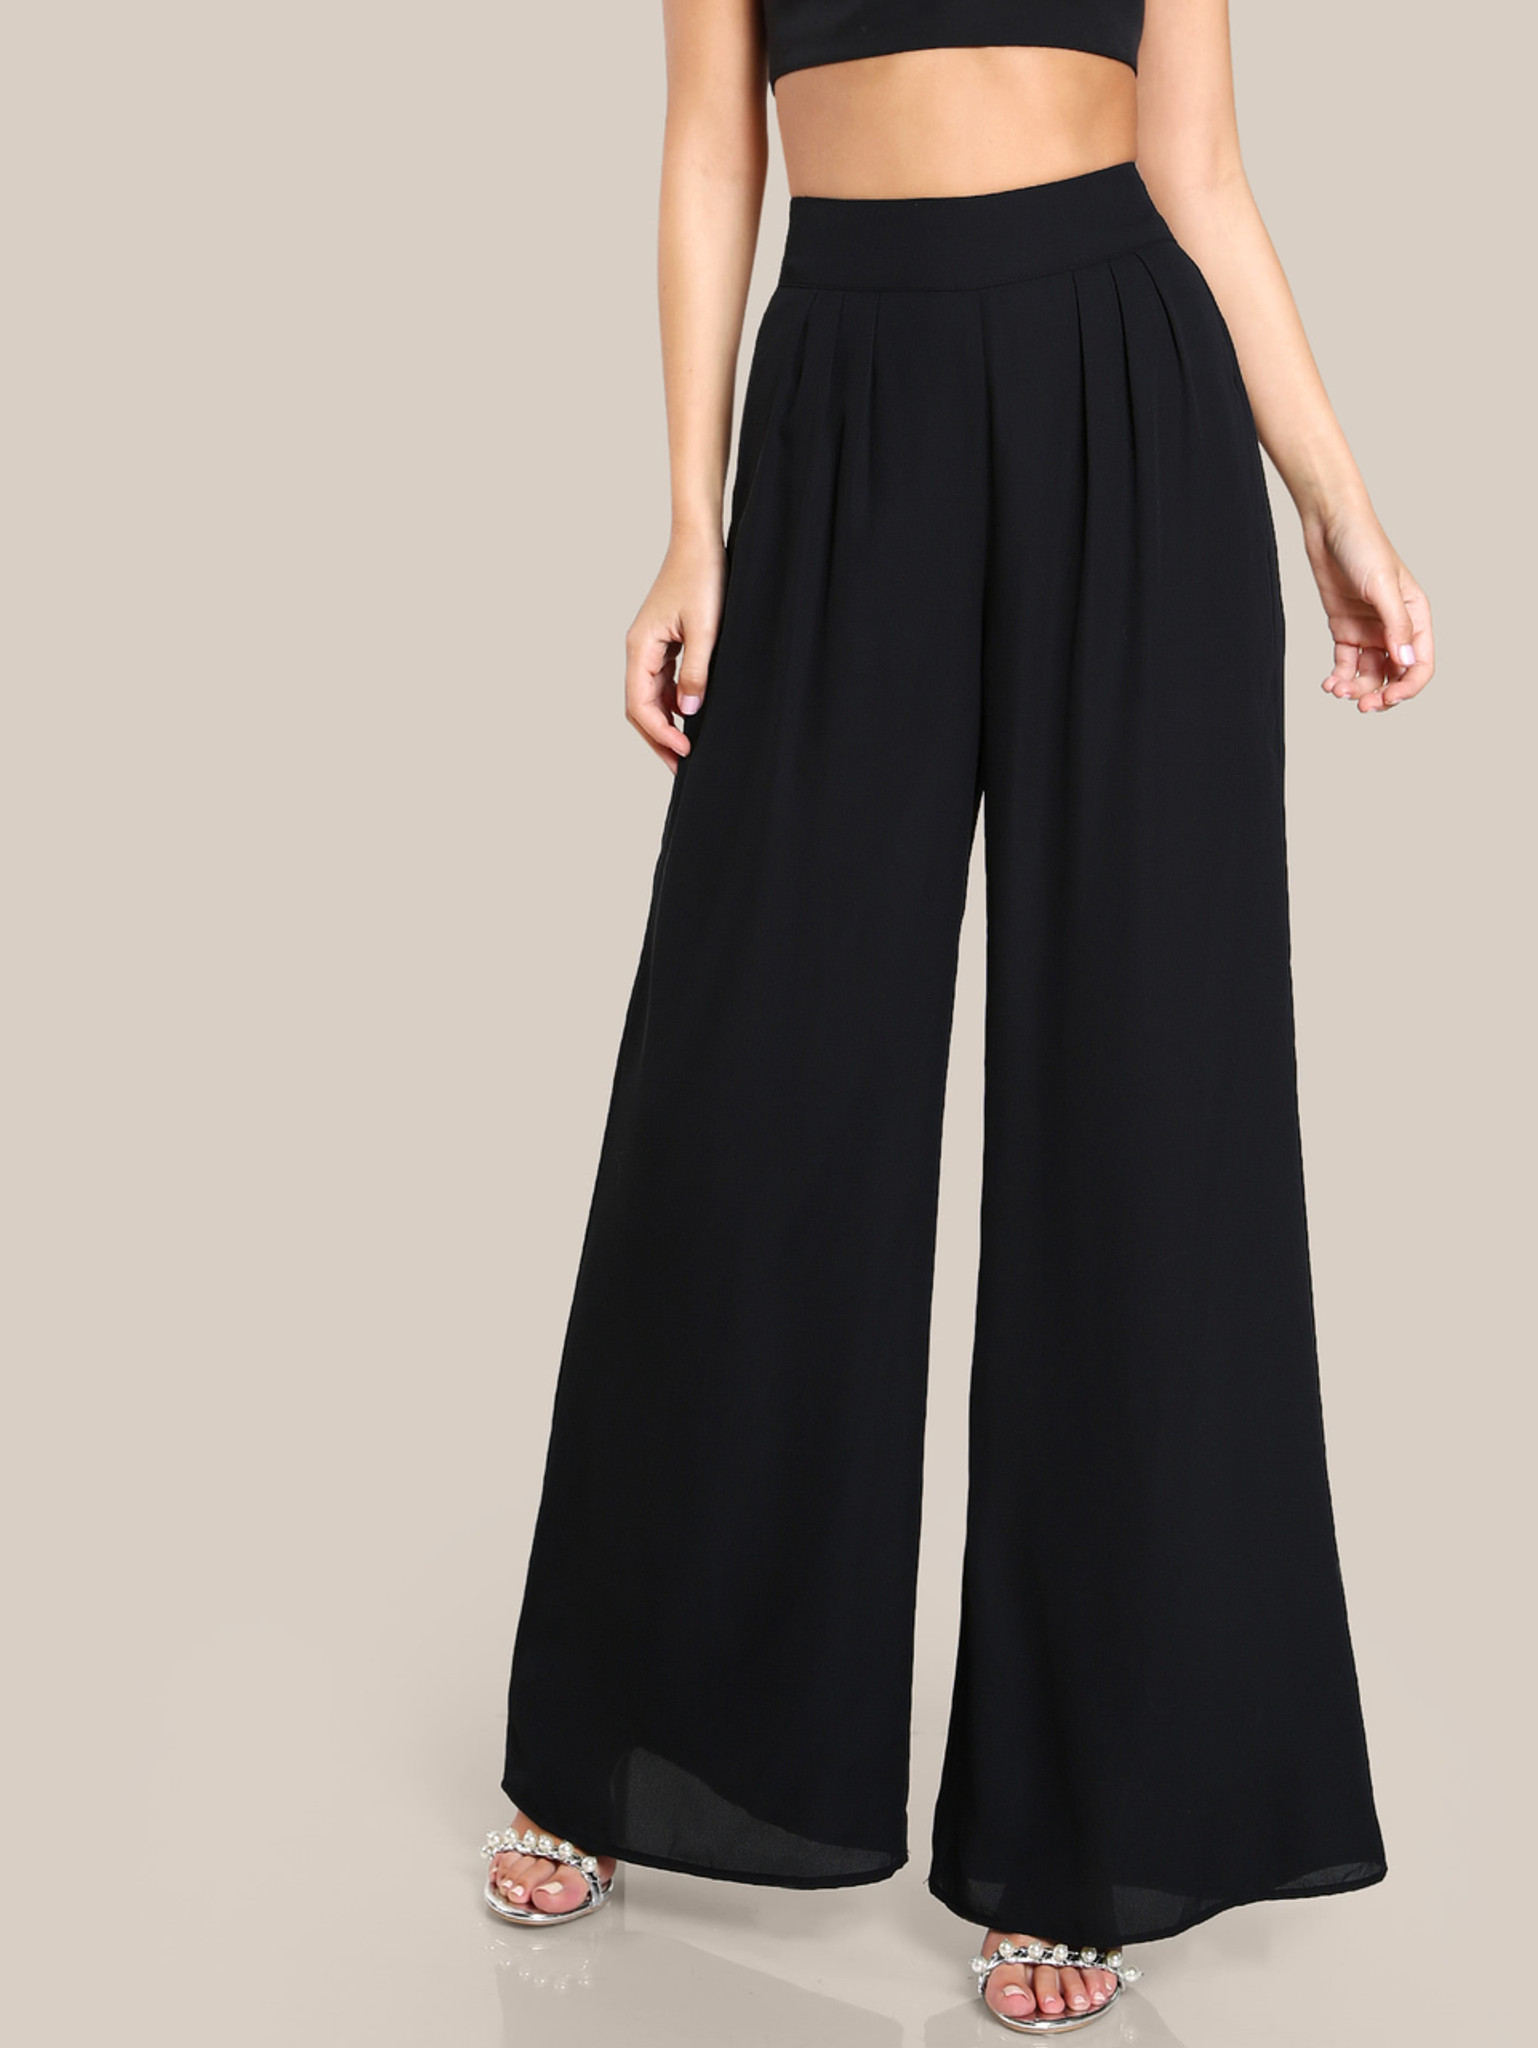 Fifth Avenue Womens Georgette Box Pleated Wide Leg Pants - Black